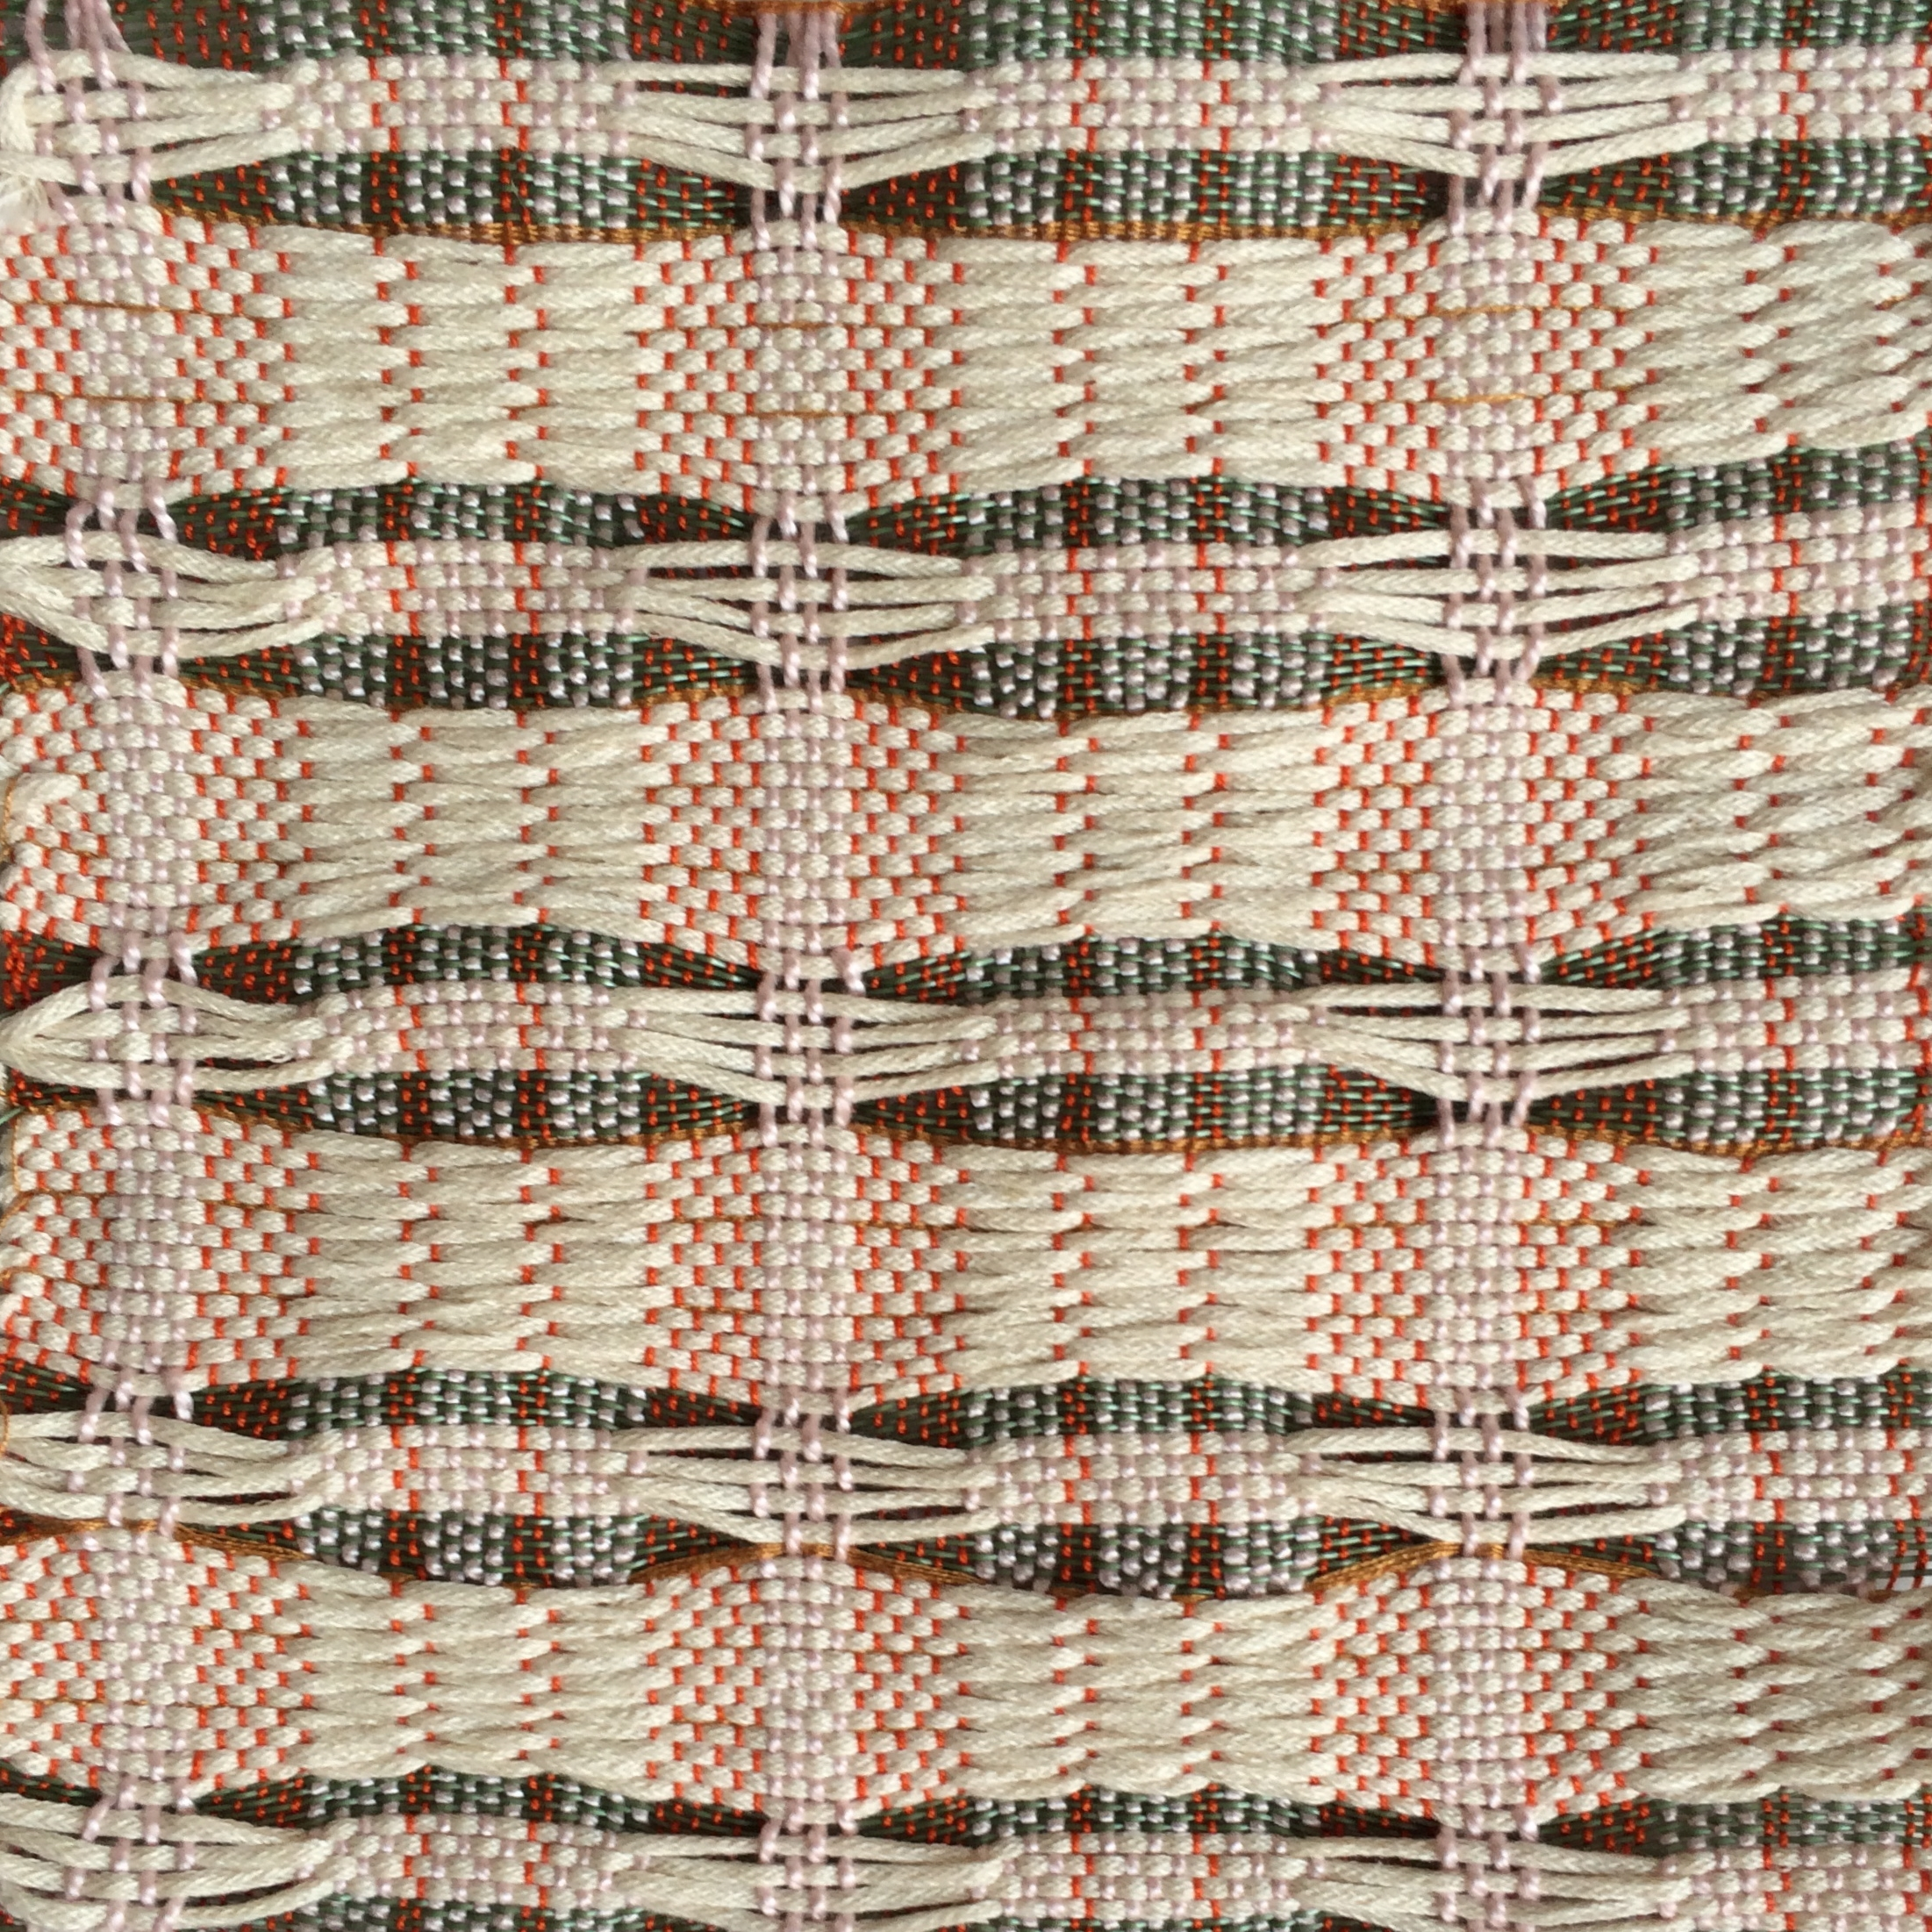 Woven on an 8-Harness Loom.  Cotton, plastic coated nylon.